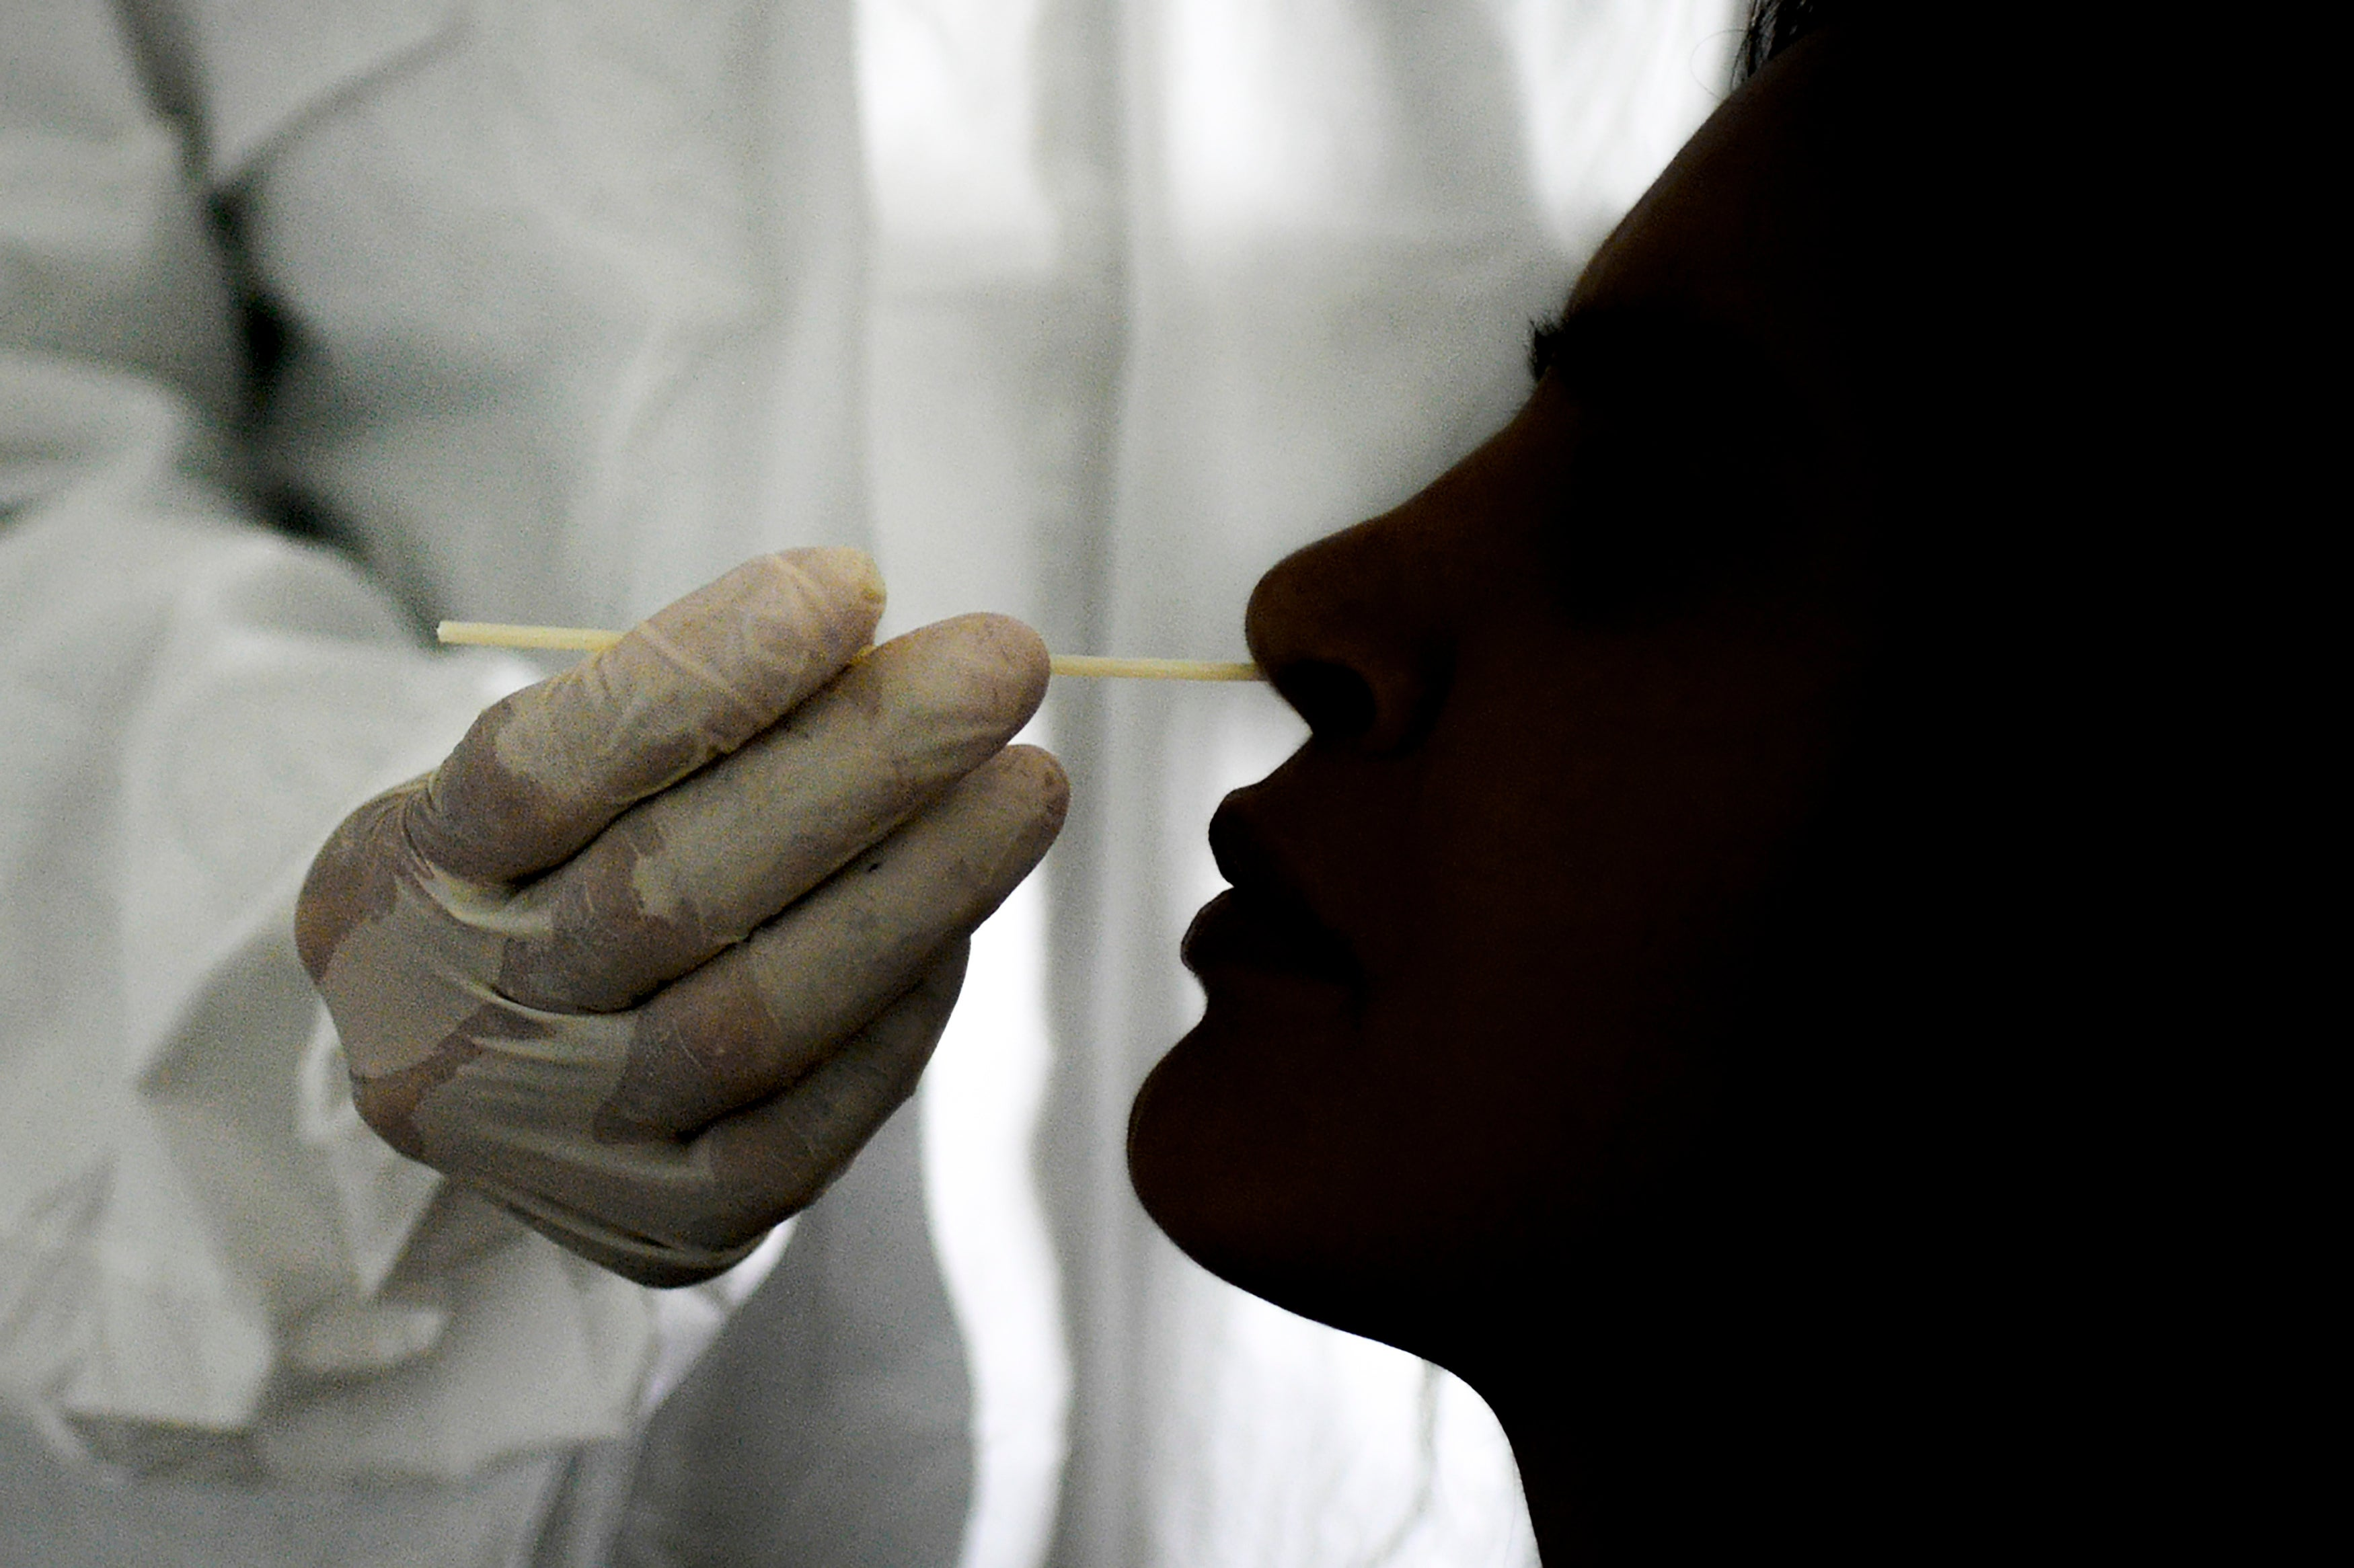 Venezuela power struggle impedes delivery of COVID vaccine - independent